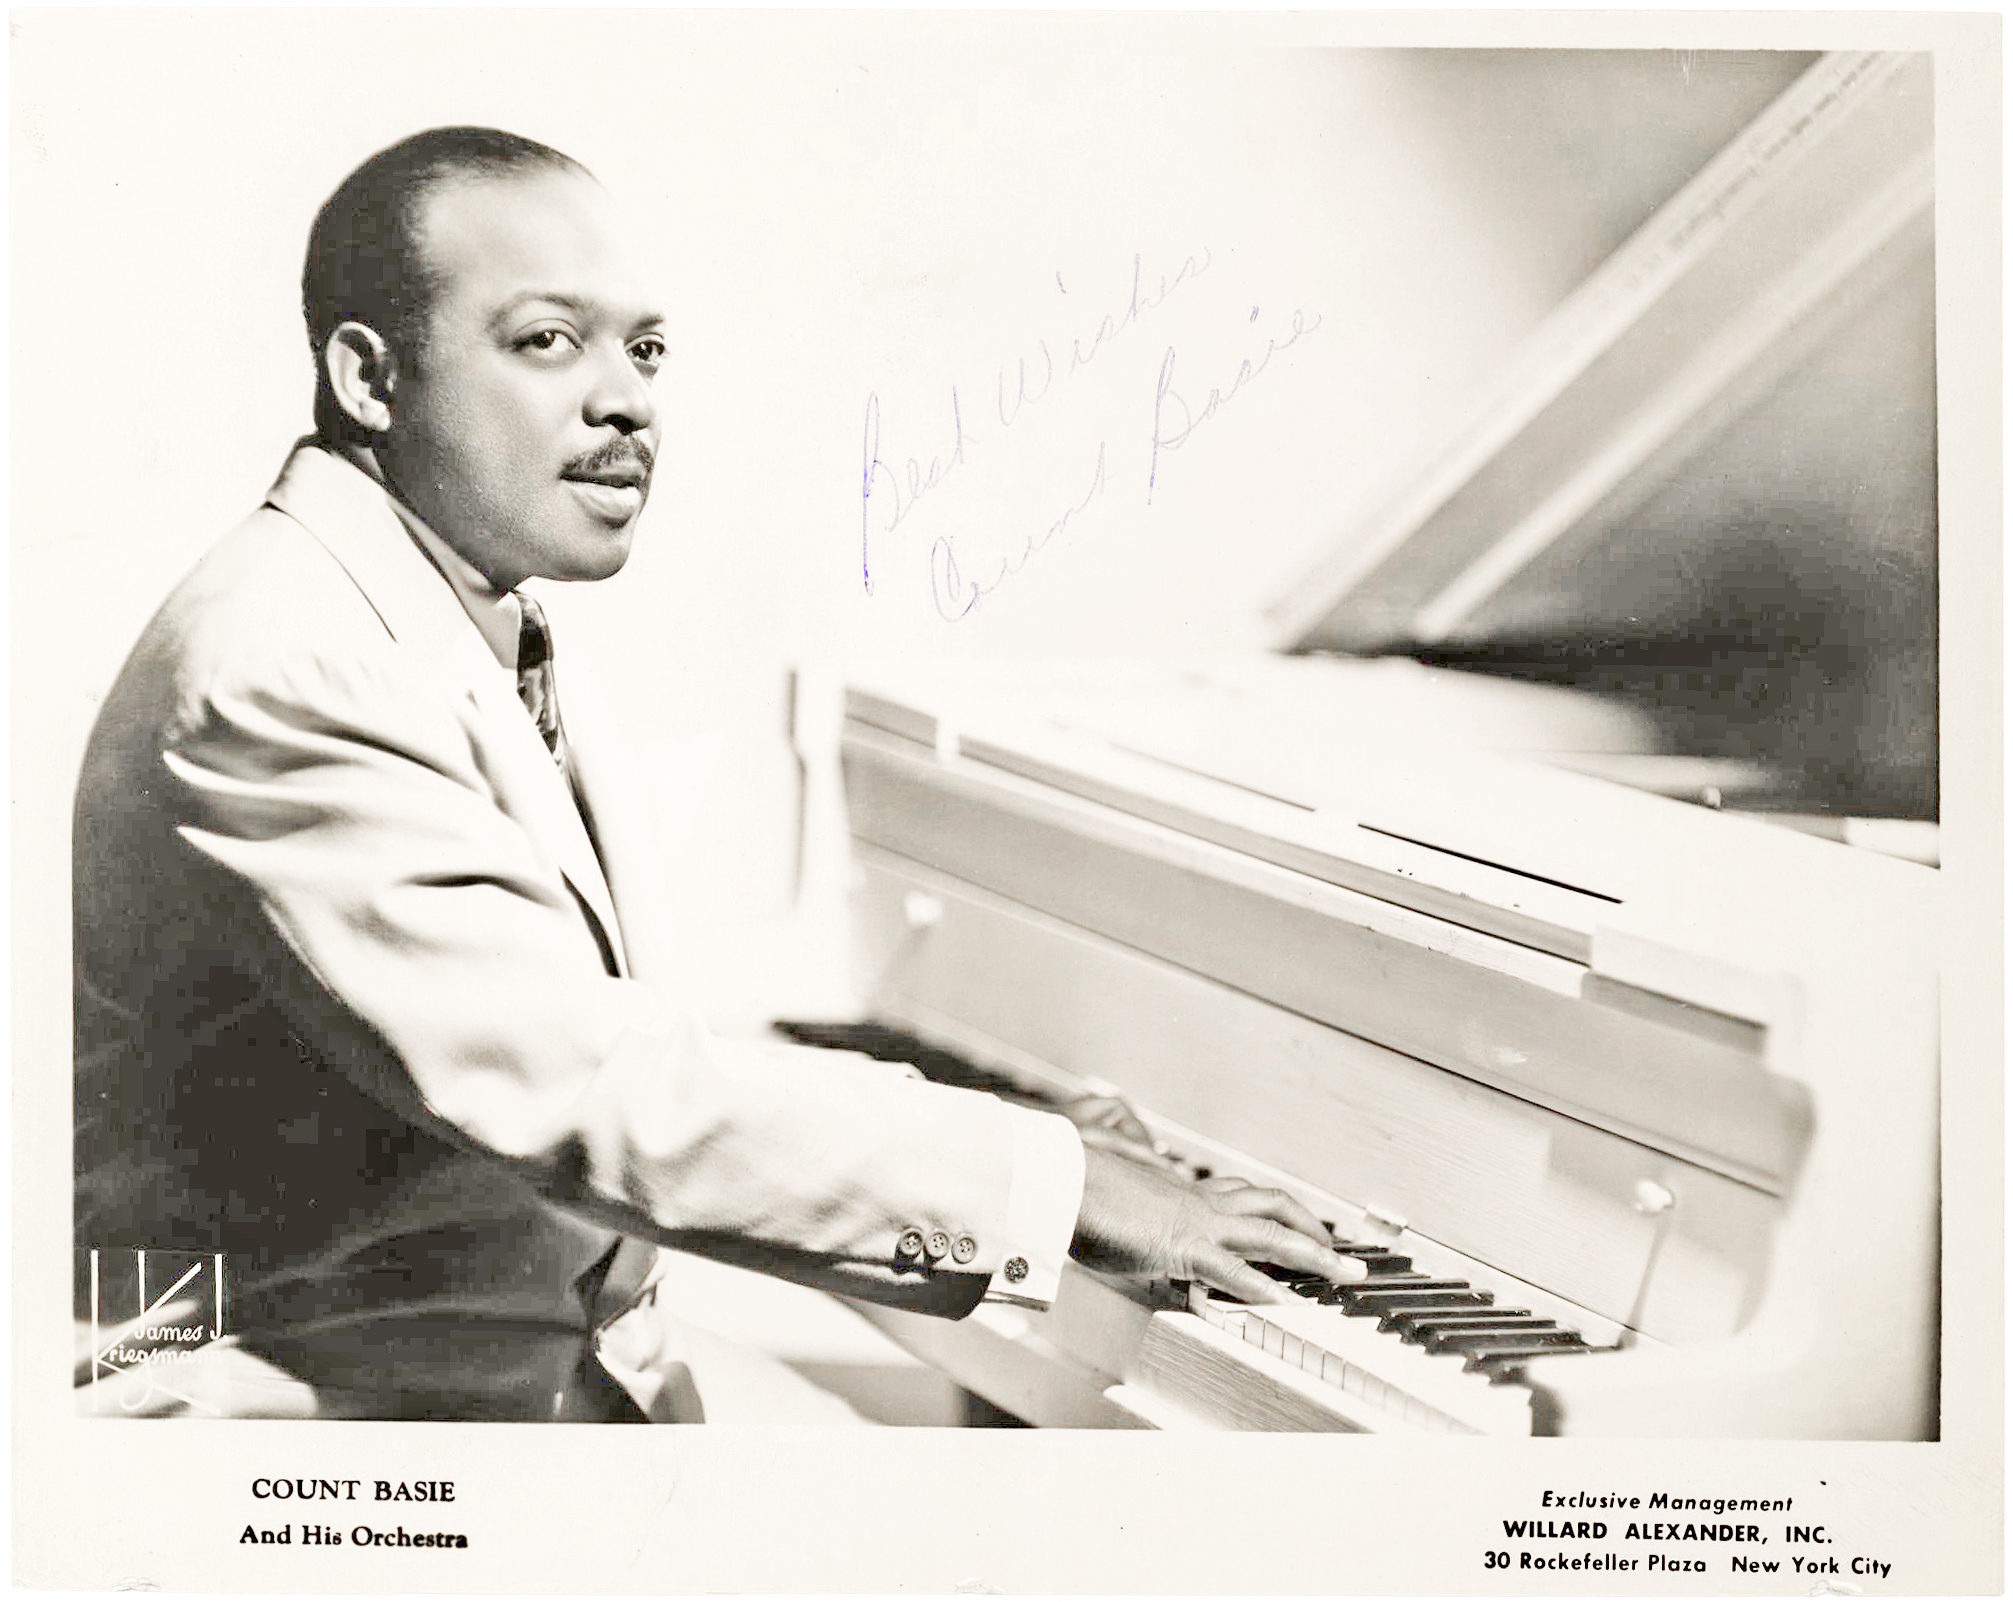 Photograph of Count Basie Seated at His White Piano